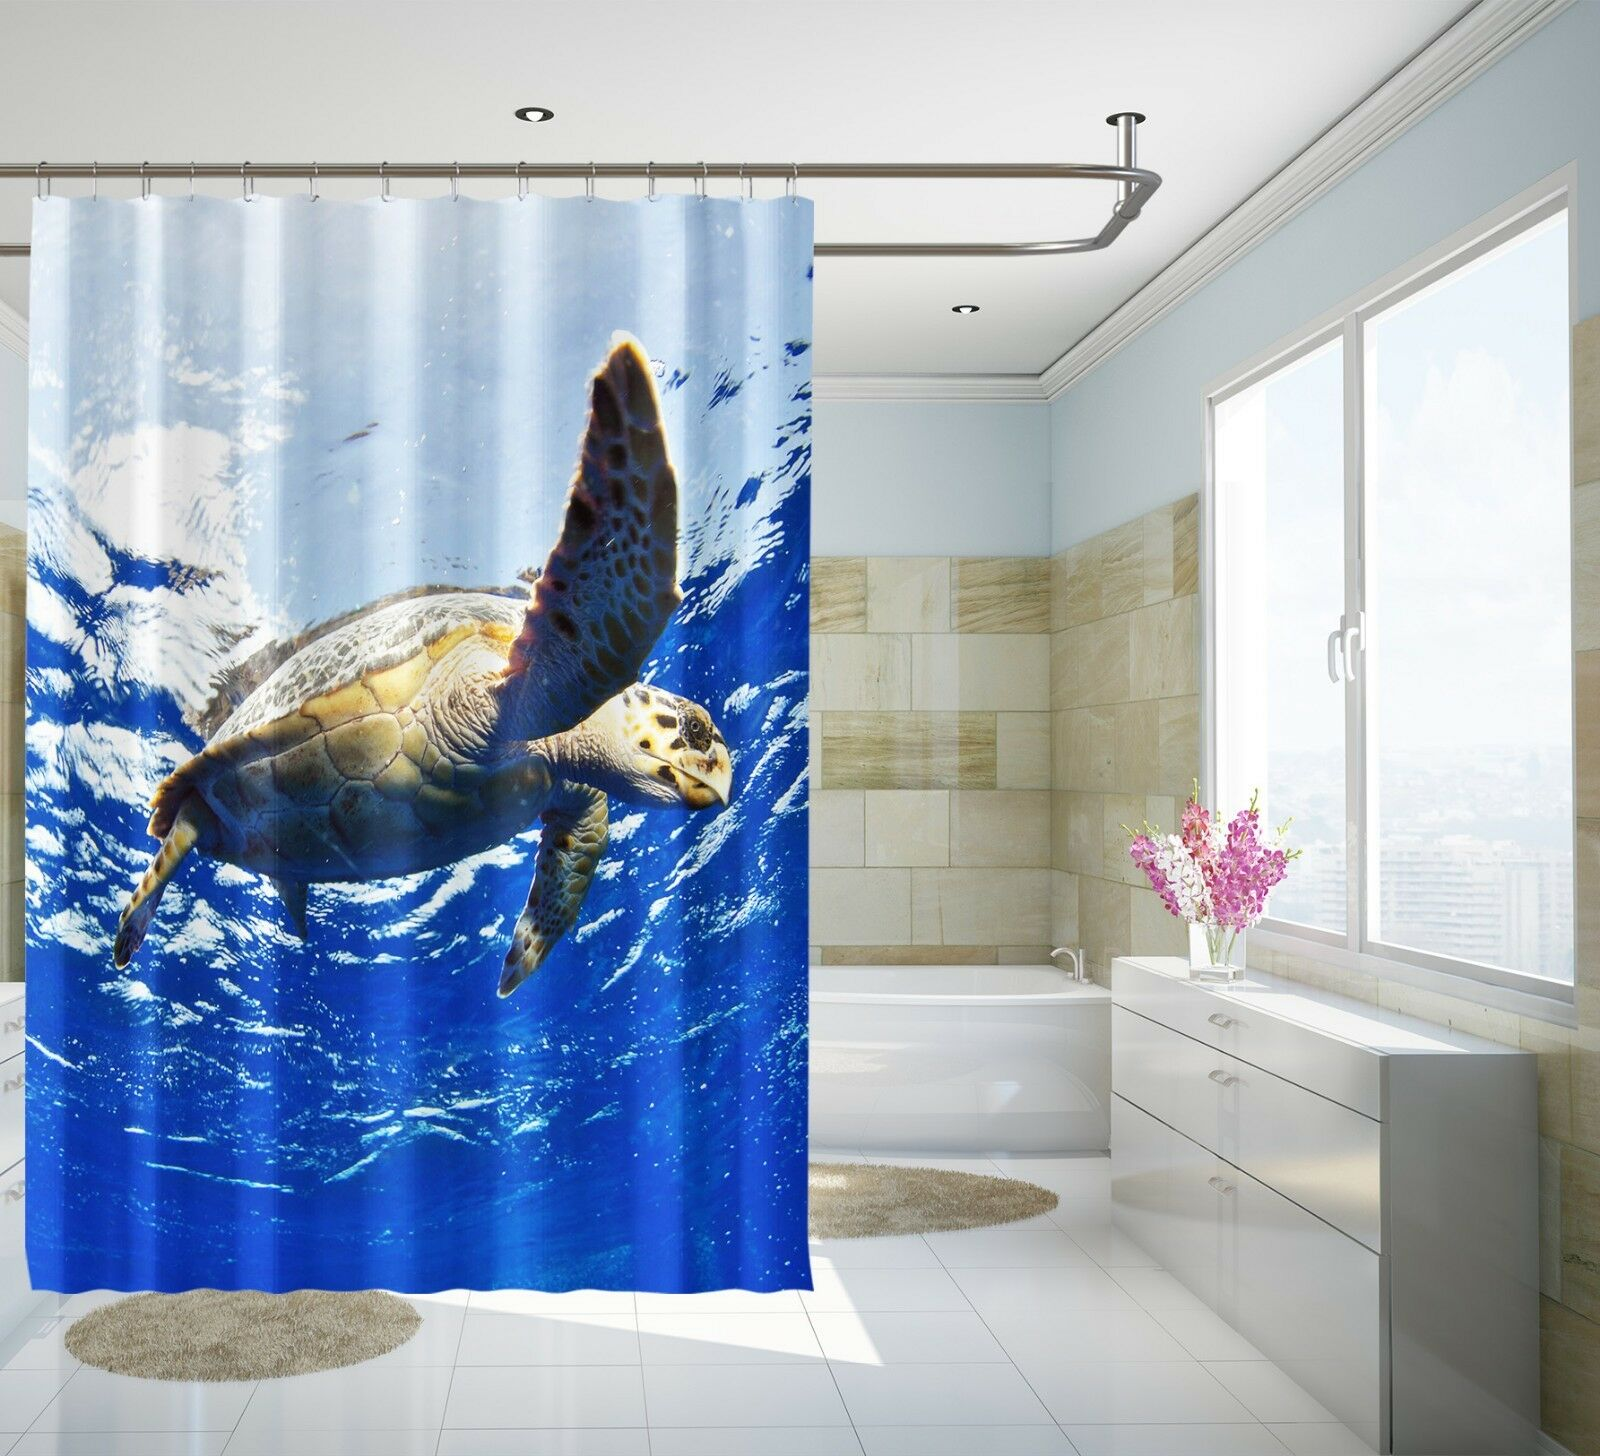 3D Tortue de mer 5 Rideau de Douche Imperméable Fibre Salle de Bain Home Windows Toilette